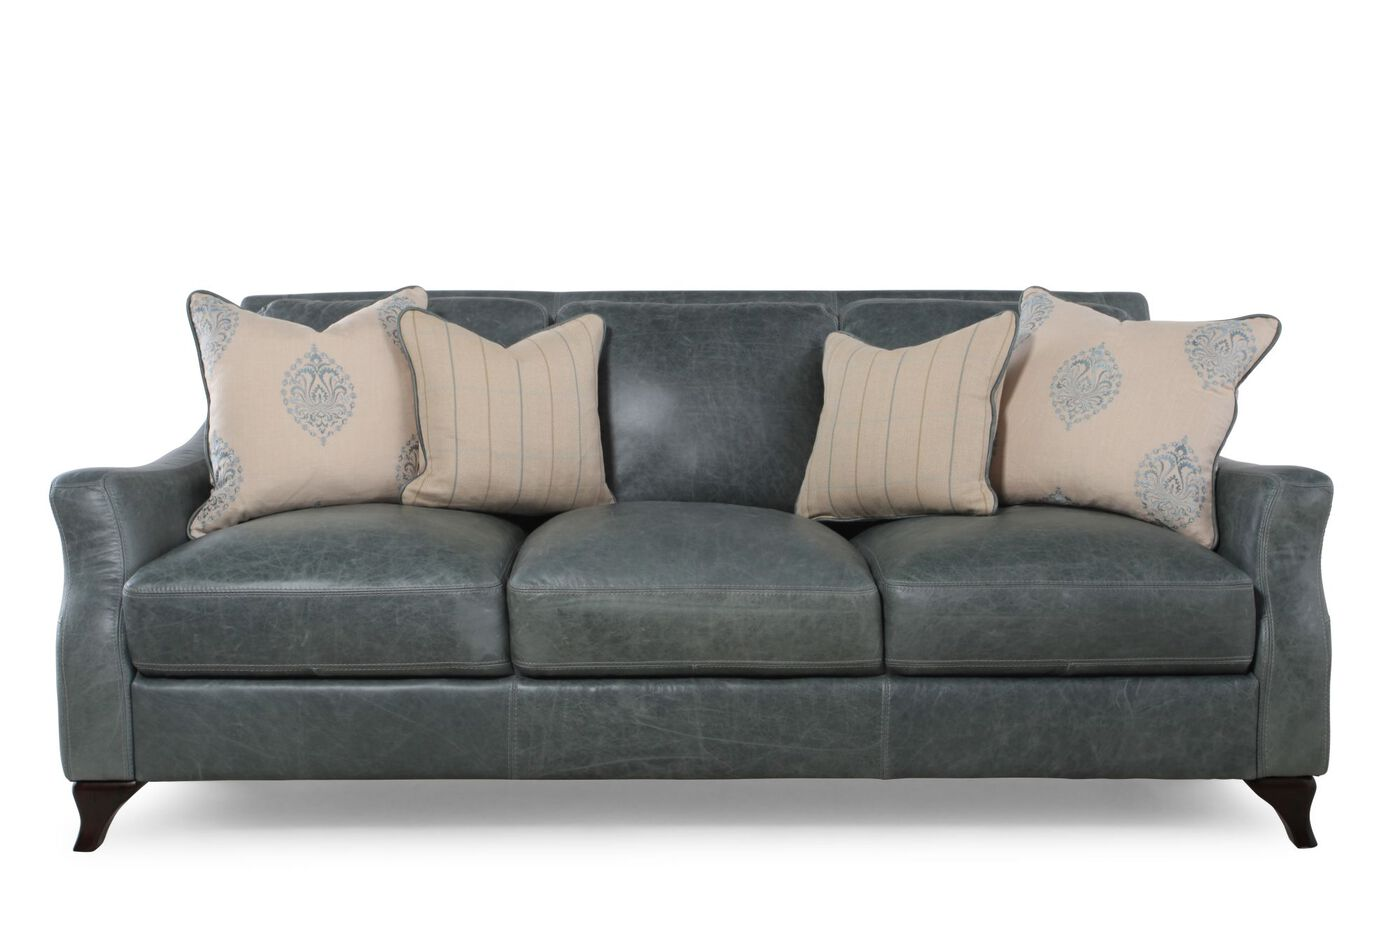 Distressed Leather Sofa in Teal | Mathis Brothers Furniture